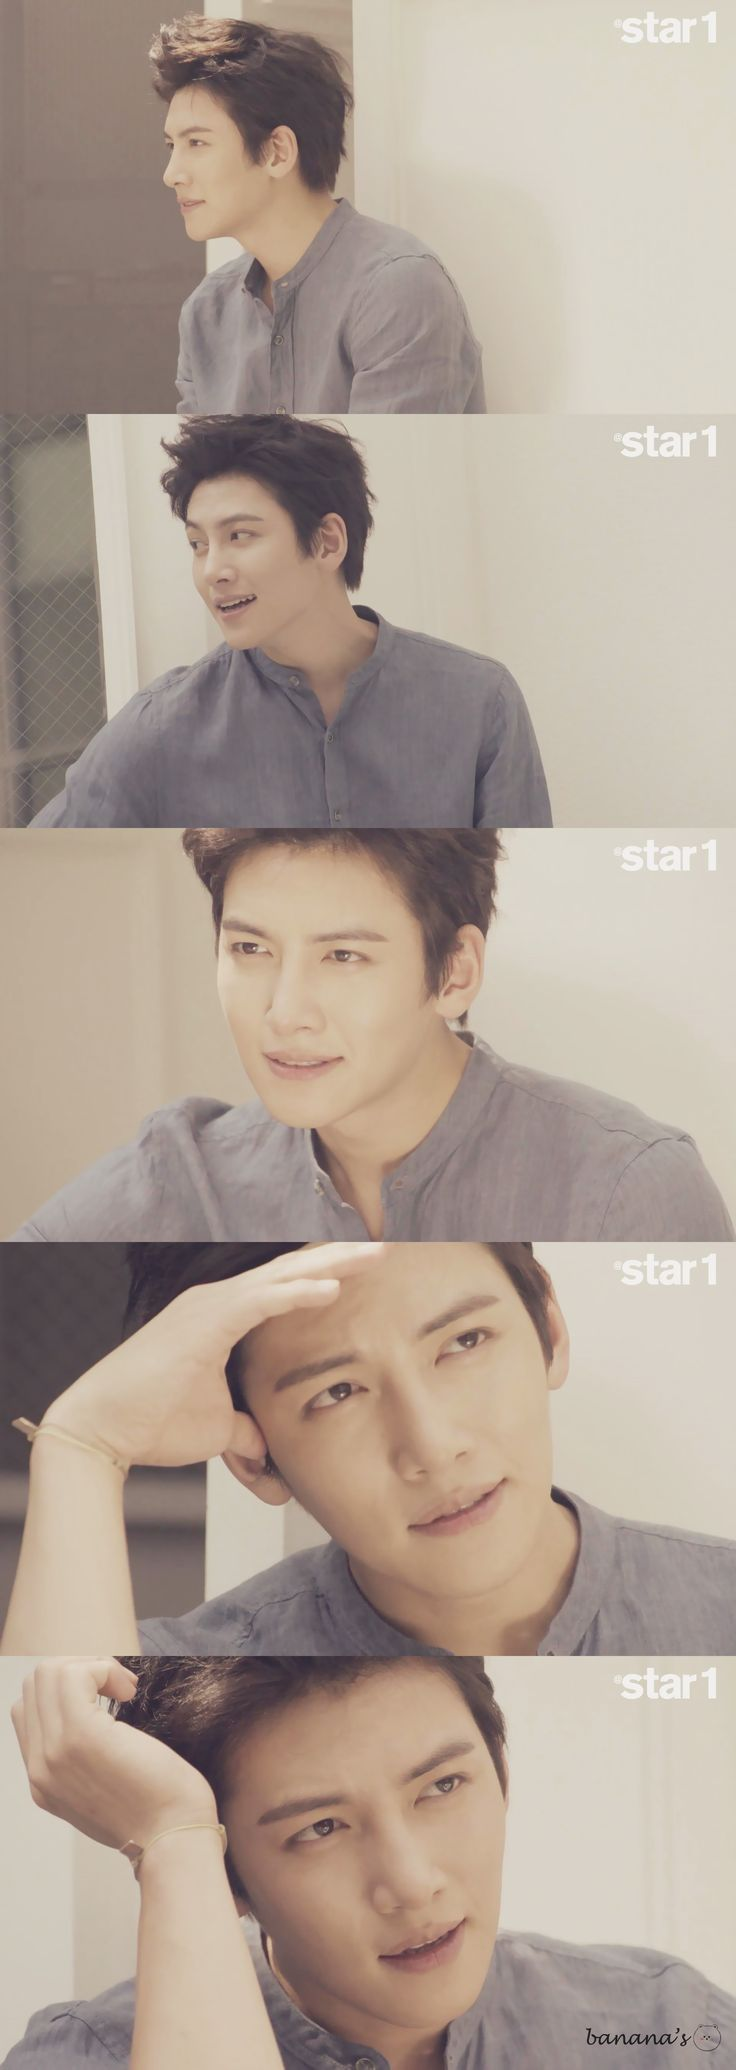 Ji Chang Wook (지창욱) Why is he so unbelievably good looking??